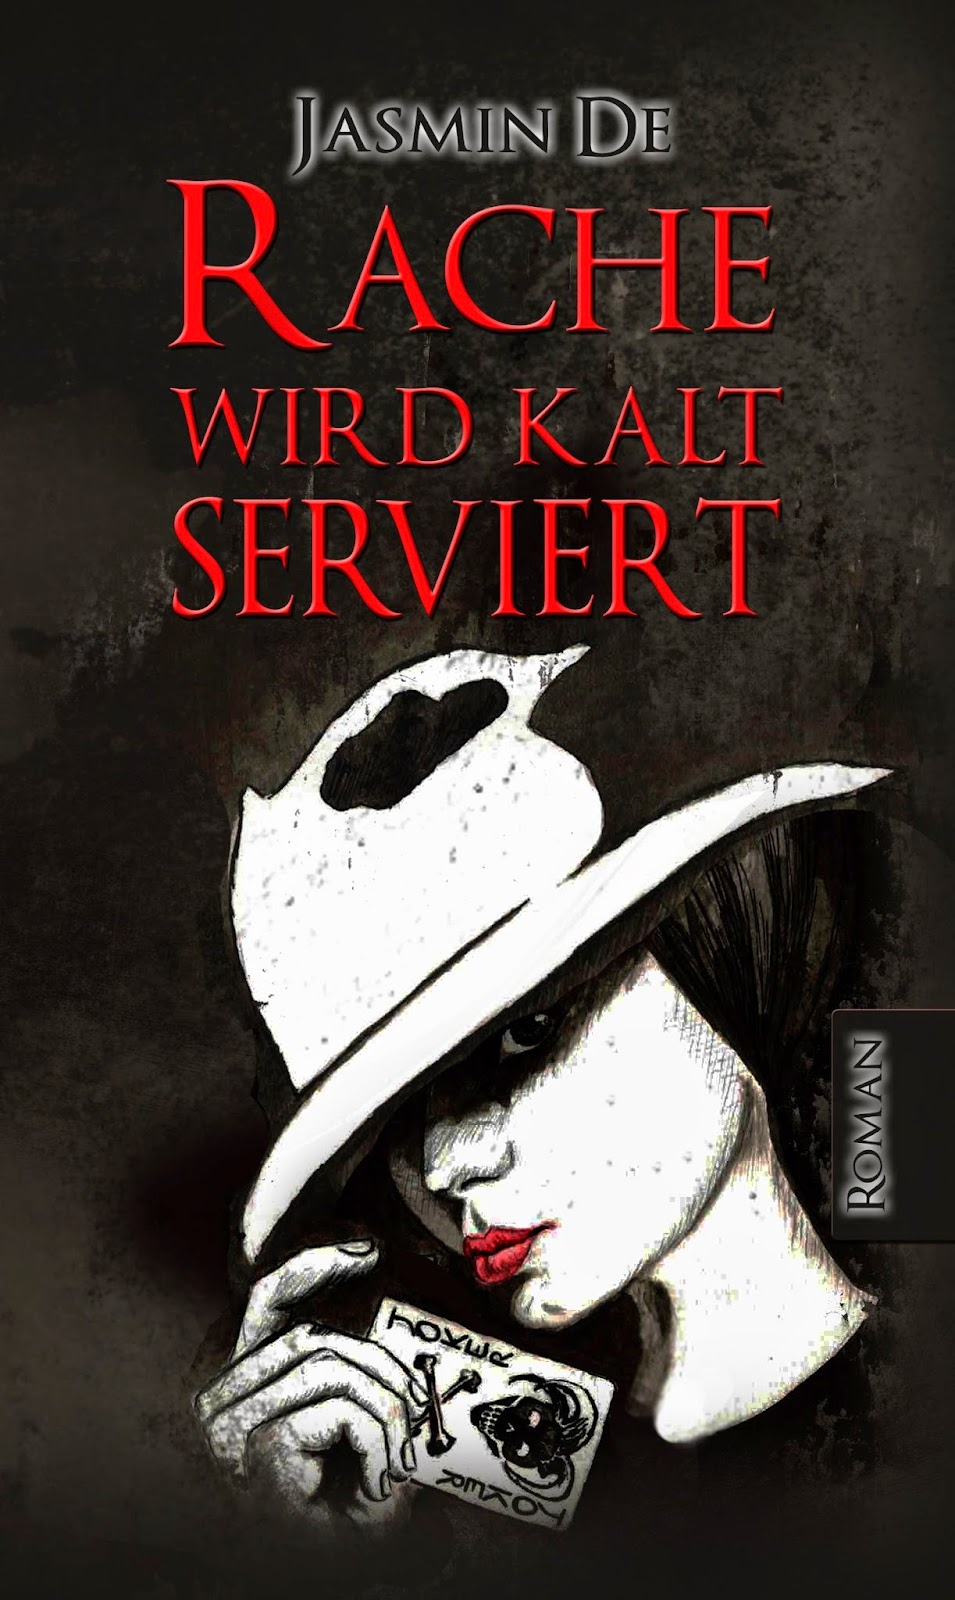 http://www.amazon.de/Rache-wird-kalt-serviert-Jasmin-ebook/dp/B00N30TLO0/ref=sr_1_1?ie=UTF8&qid=1411517934&sr=8-1&keywords=rache+wird+kalt